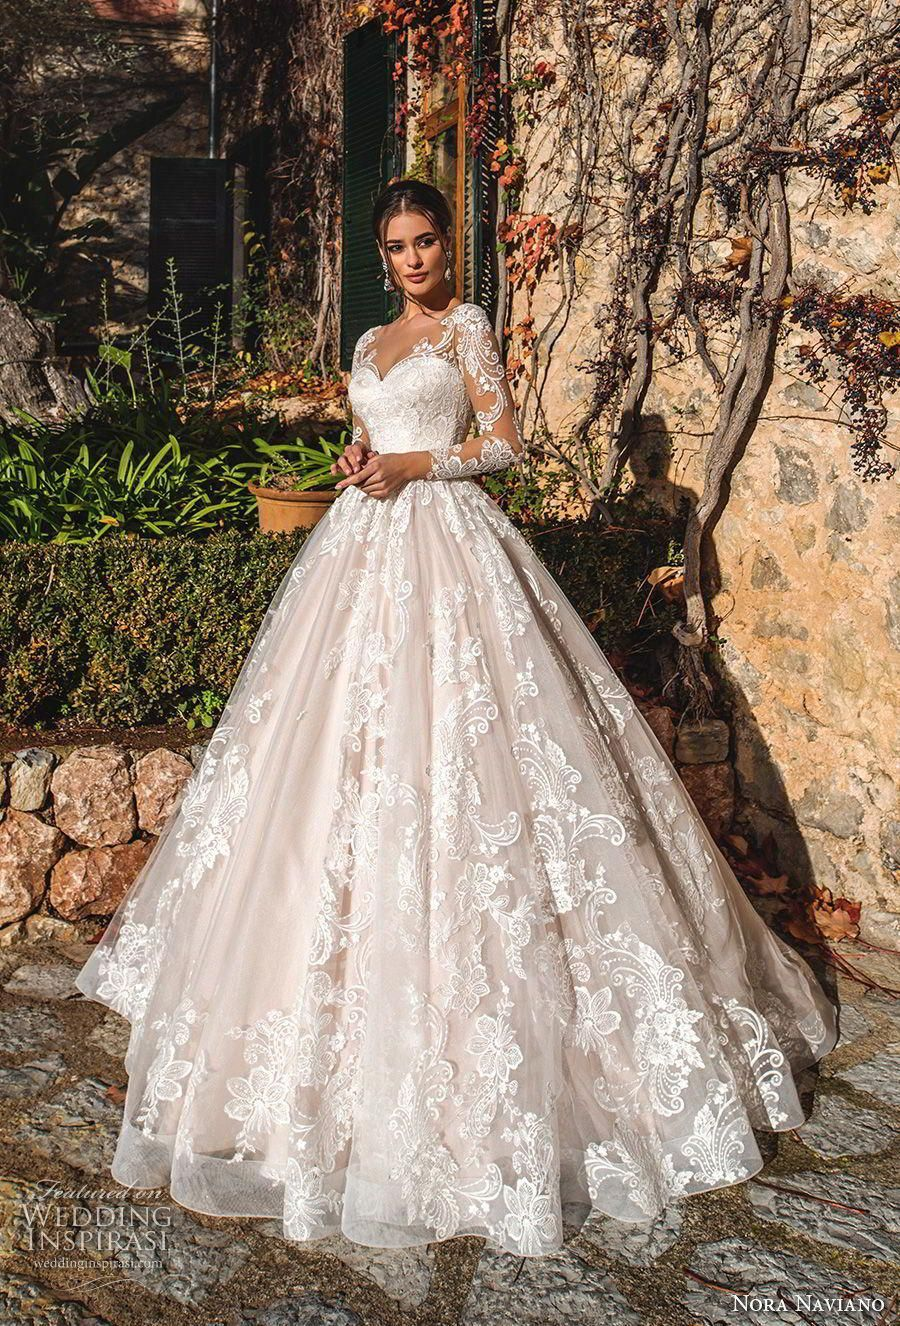 Gorgeous Wedding Dresses From Simple To Elegant Wedding Gown Images Notice Dress Dream Wedding Dresses Ball Gowns Wedding Lace Wedding Dress With Sleeves [ 1326 x 900 Pixel ]